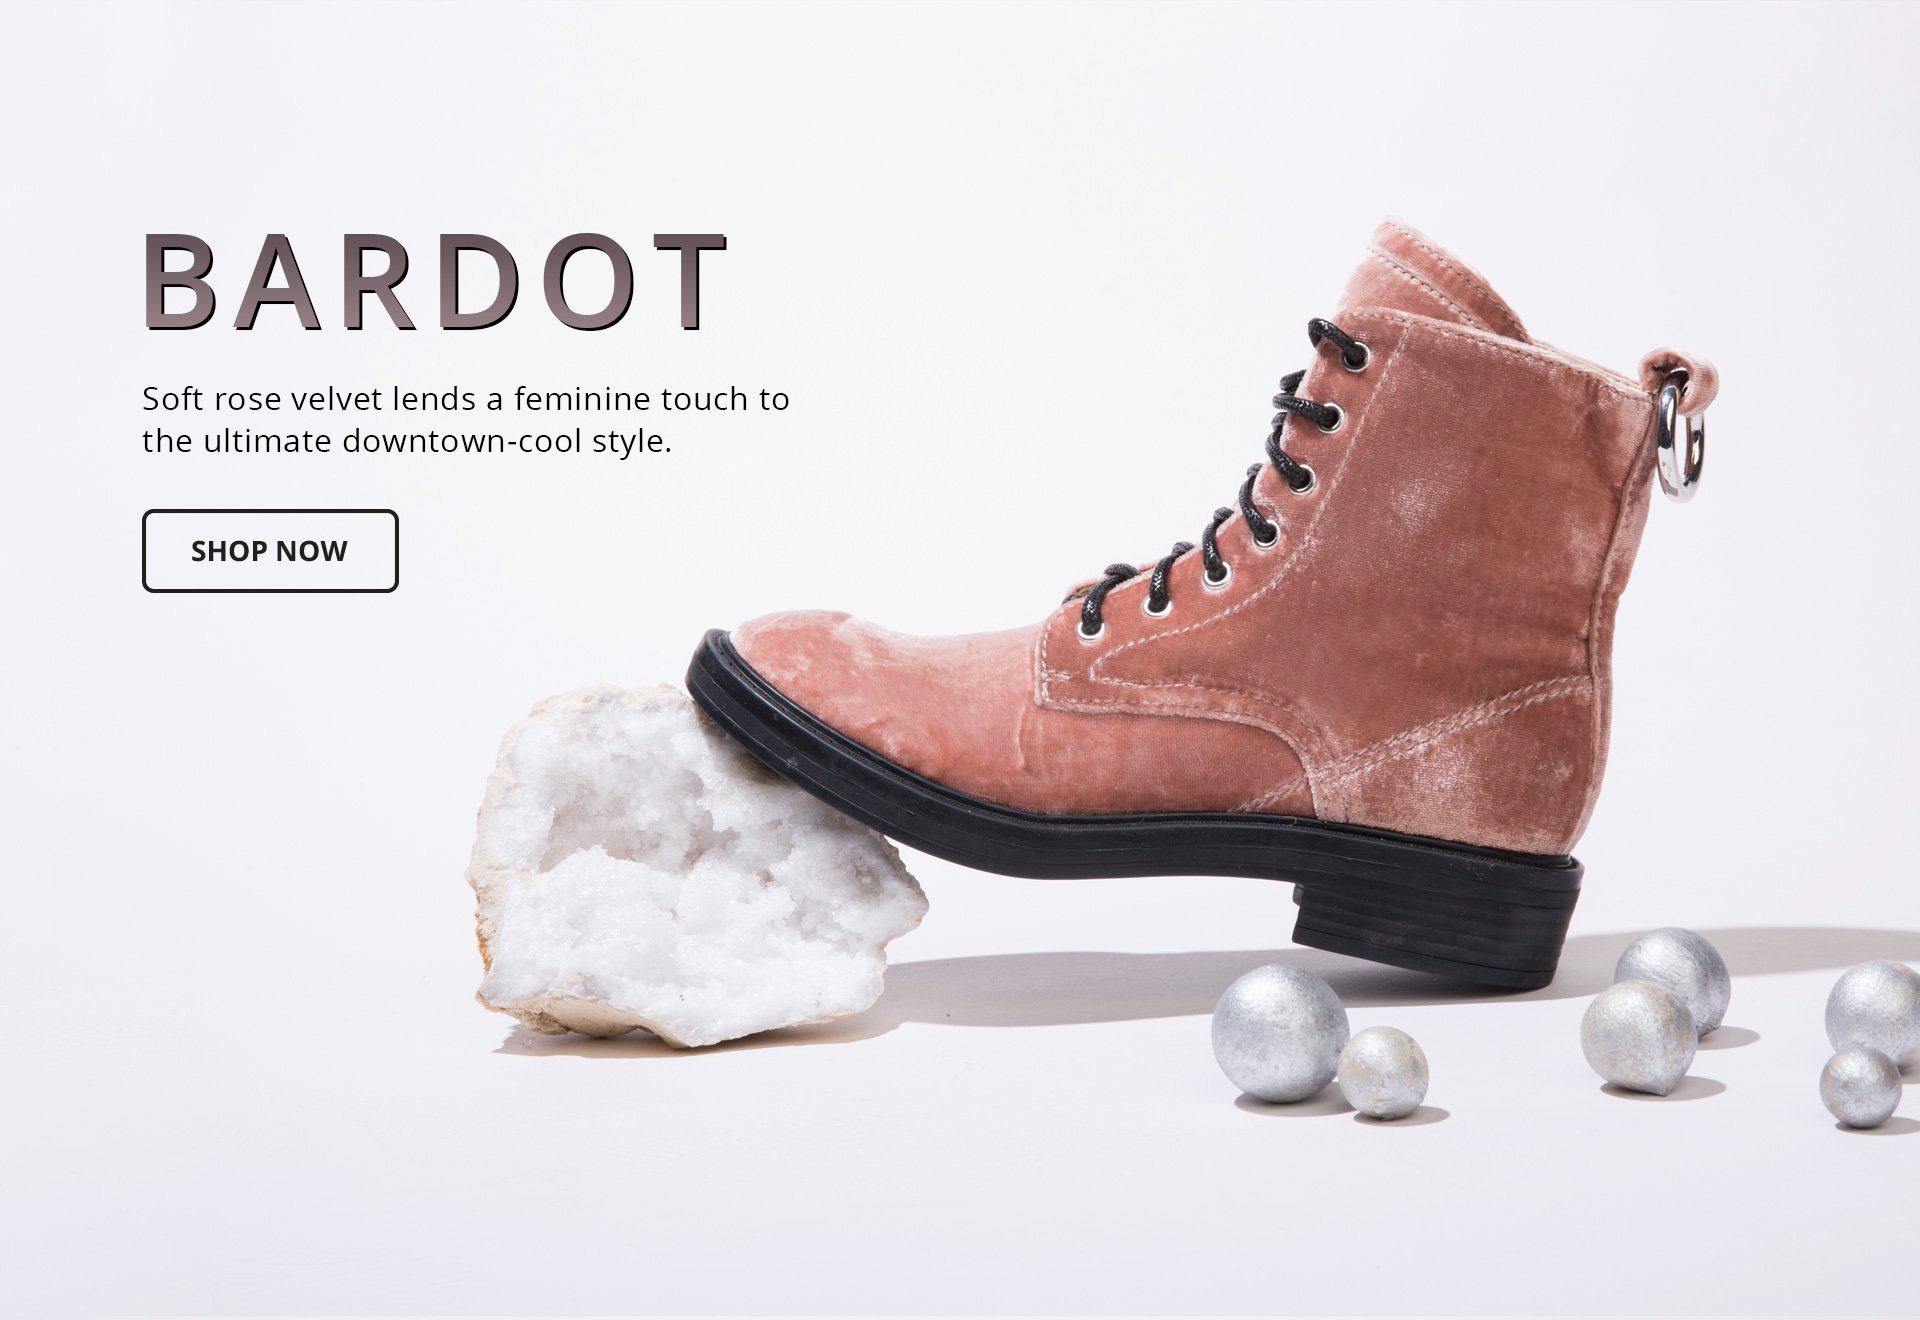 Bardot. Soft rose velvet lends a feminine touch to the ultimate downtown-cool style.